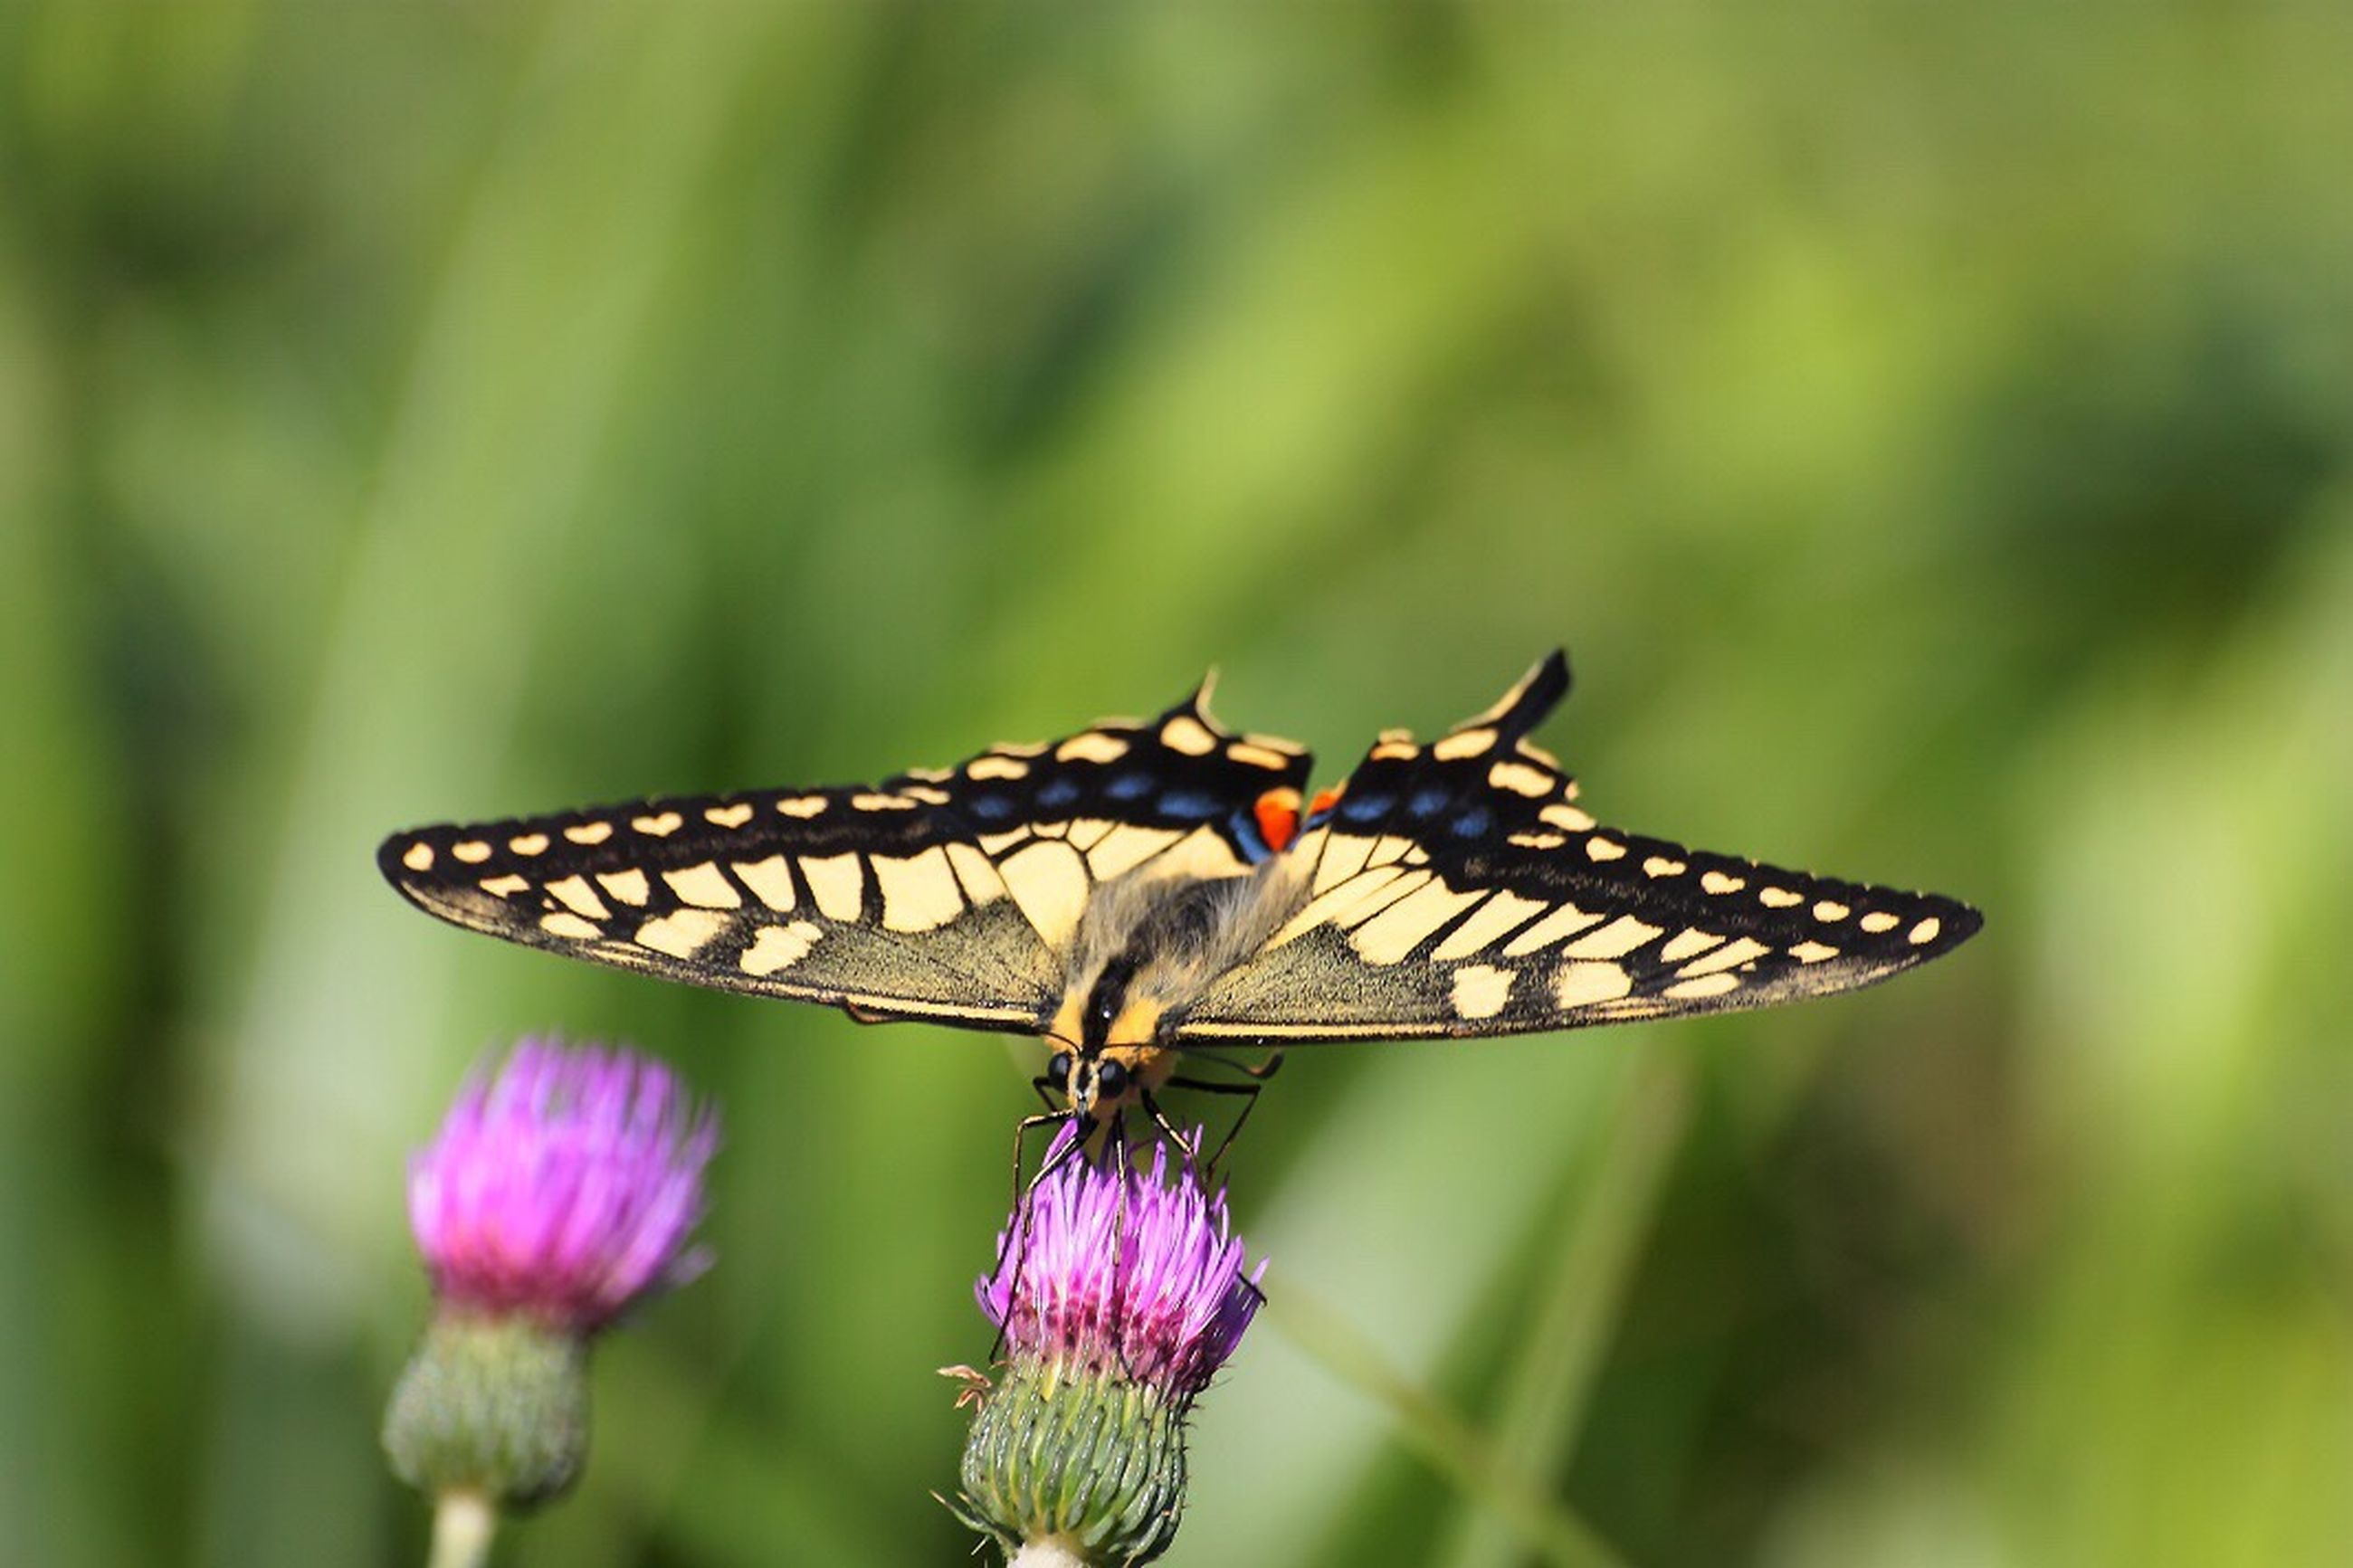 insect, animals in the wild, animal themes, one animal, plant, nature, beauty in nature, butterfly - insect, focus on foreground, close-up, flower, outdoors, no people, growth, animal wildlife, day, fragility, butterfly, pollination, freshness, perching, spread wings